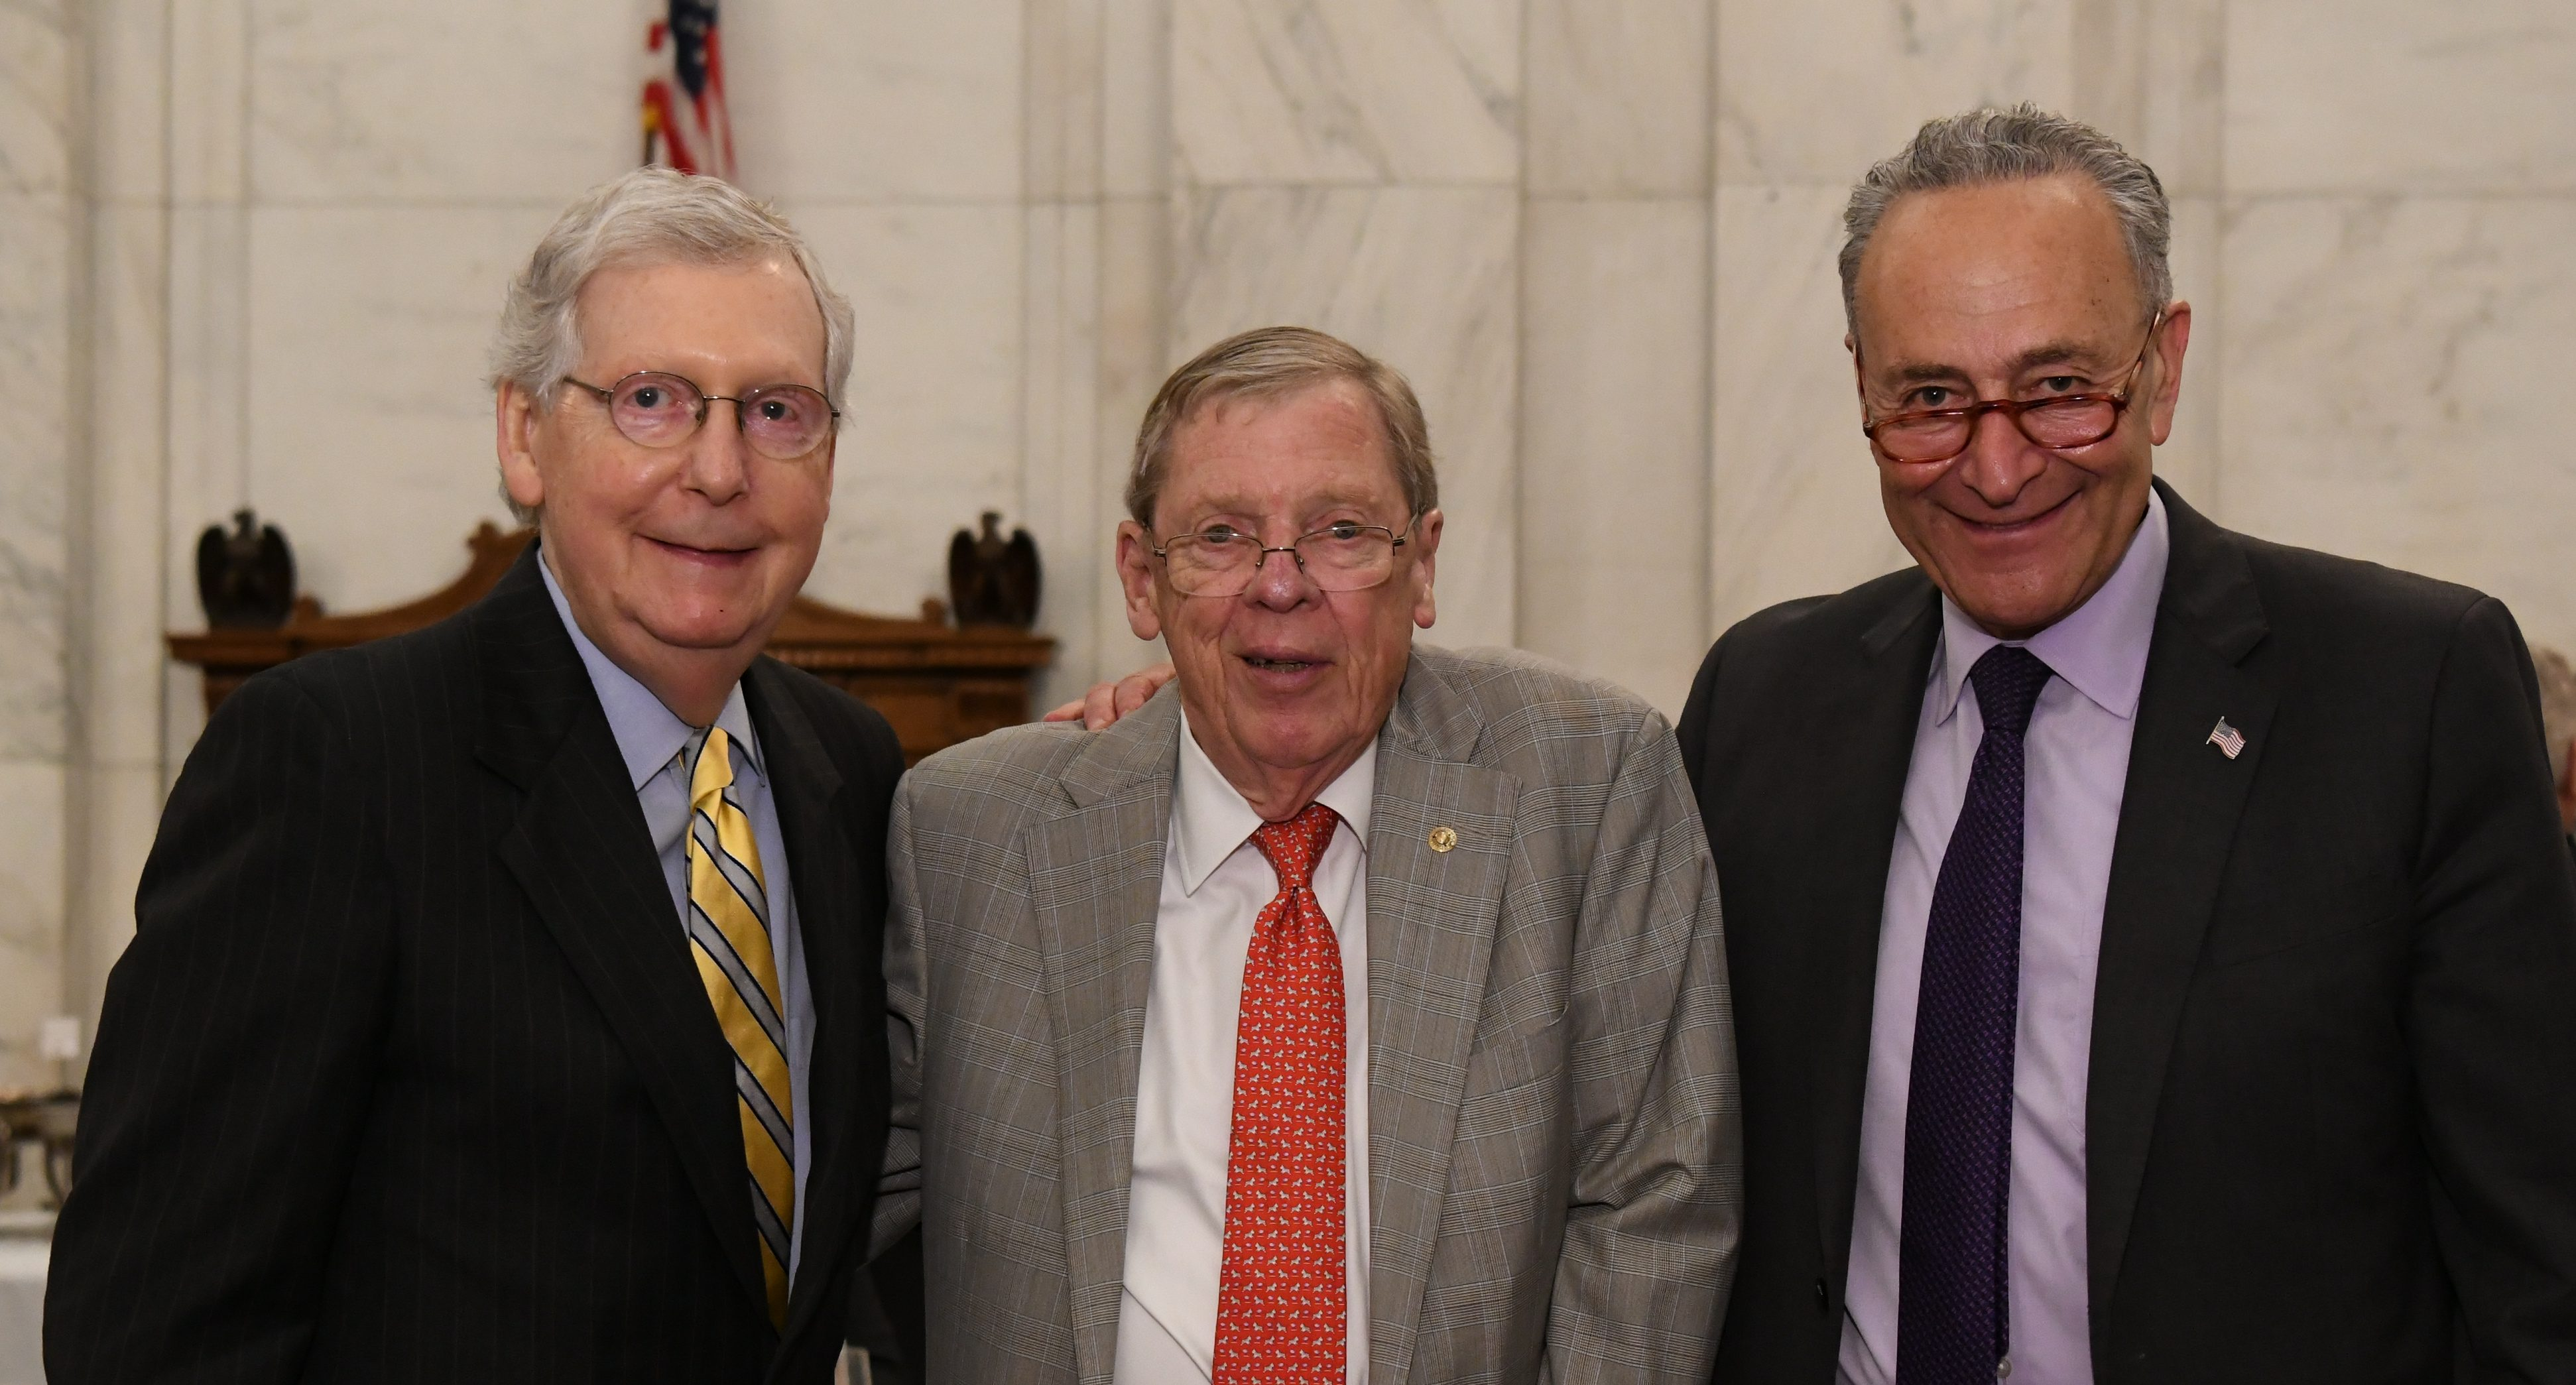 This photo sums up the meaning of this entire article as we see both Senate leaders Chuck Schumer (right) and Mitch McConnell (left) stop for a photo with Georgia Senator Johnny Isakson (center) during the only bi-partisan lunch the U.S. Senate will have this year.